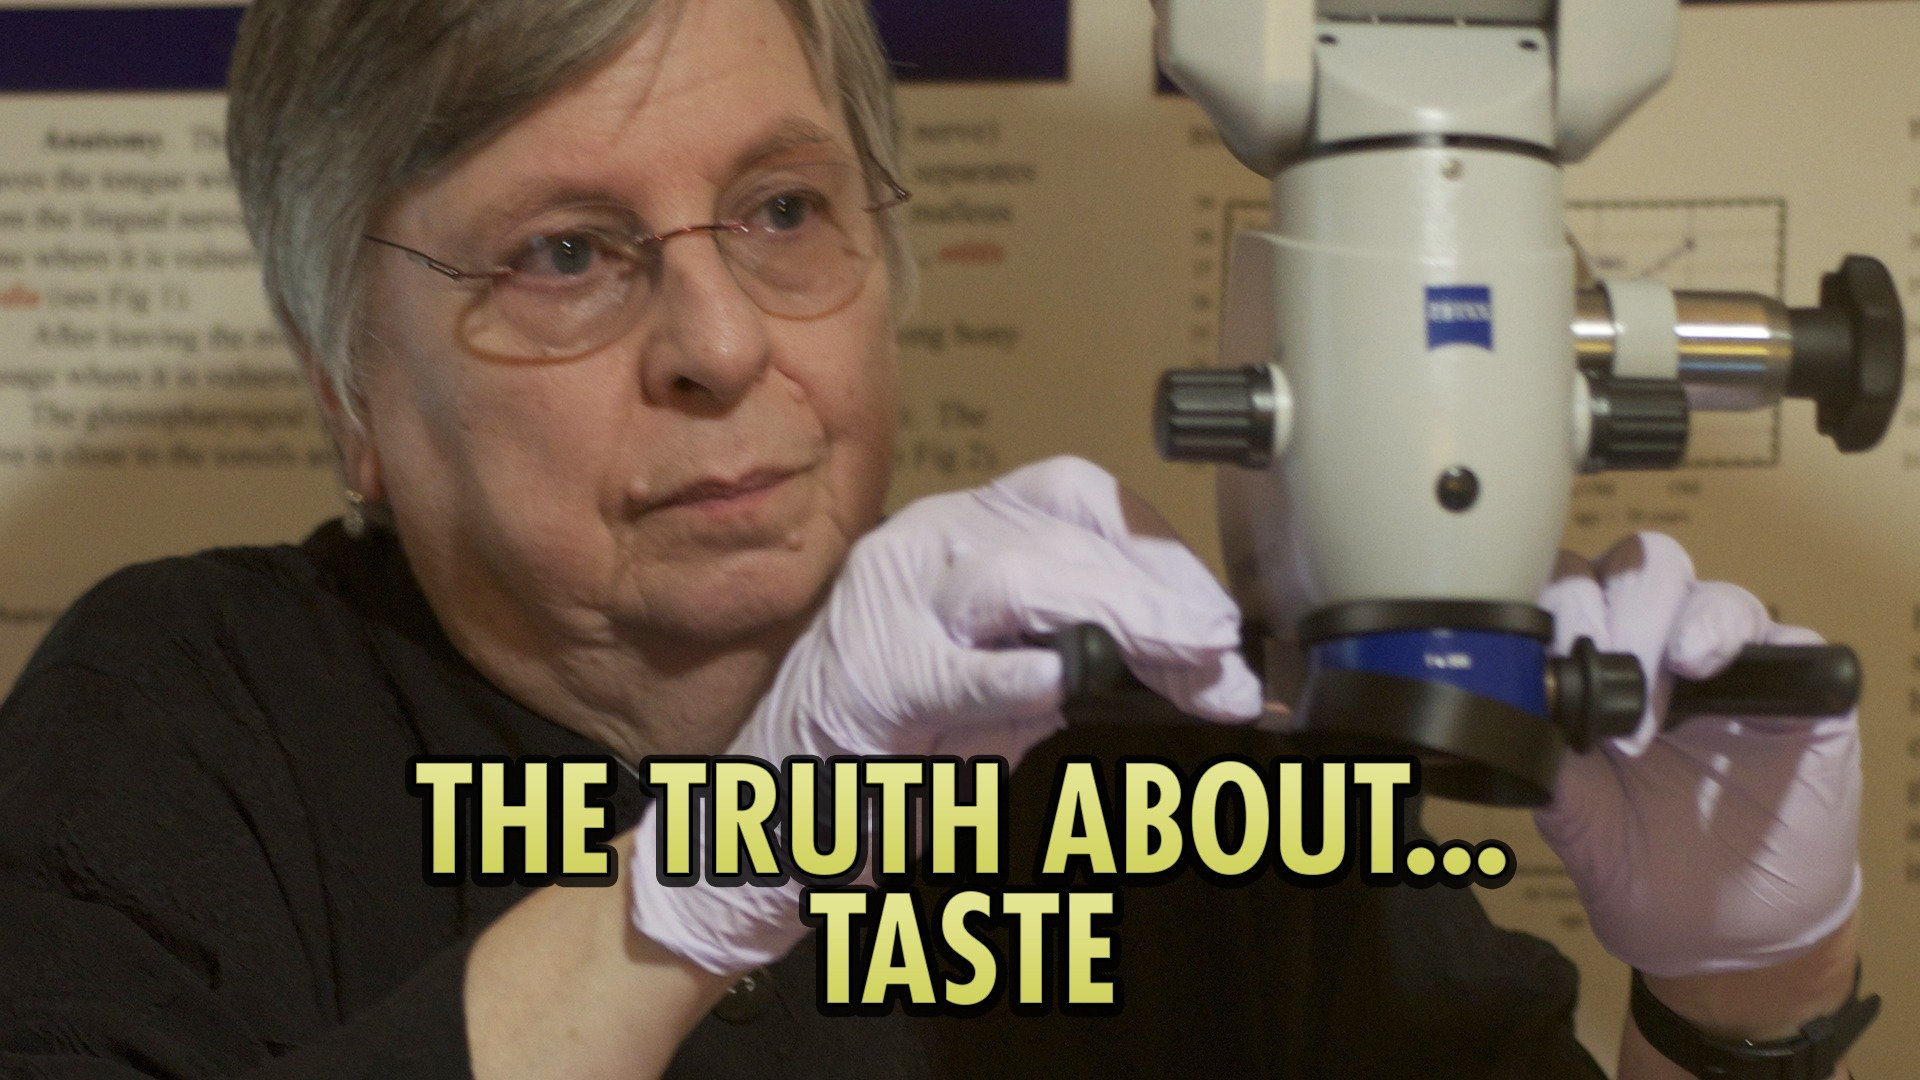 The Truth About... Taste